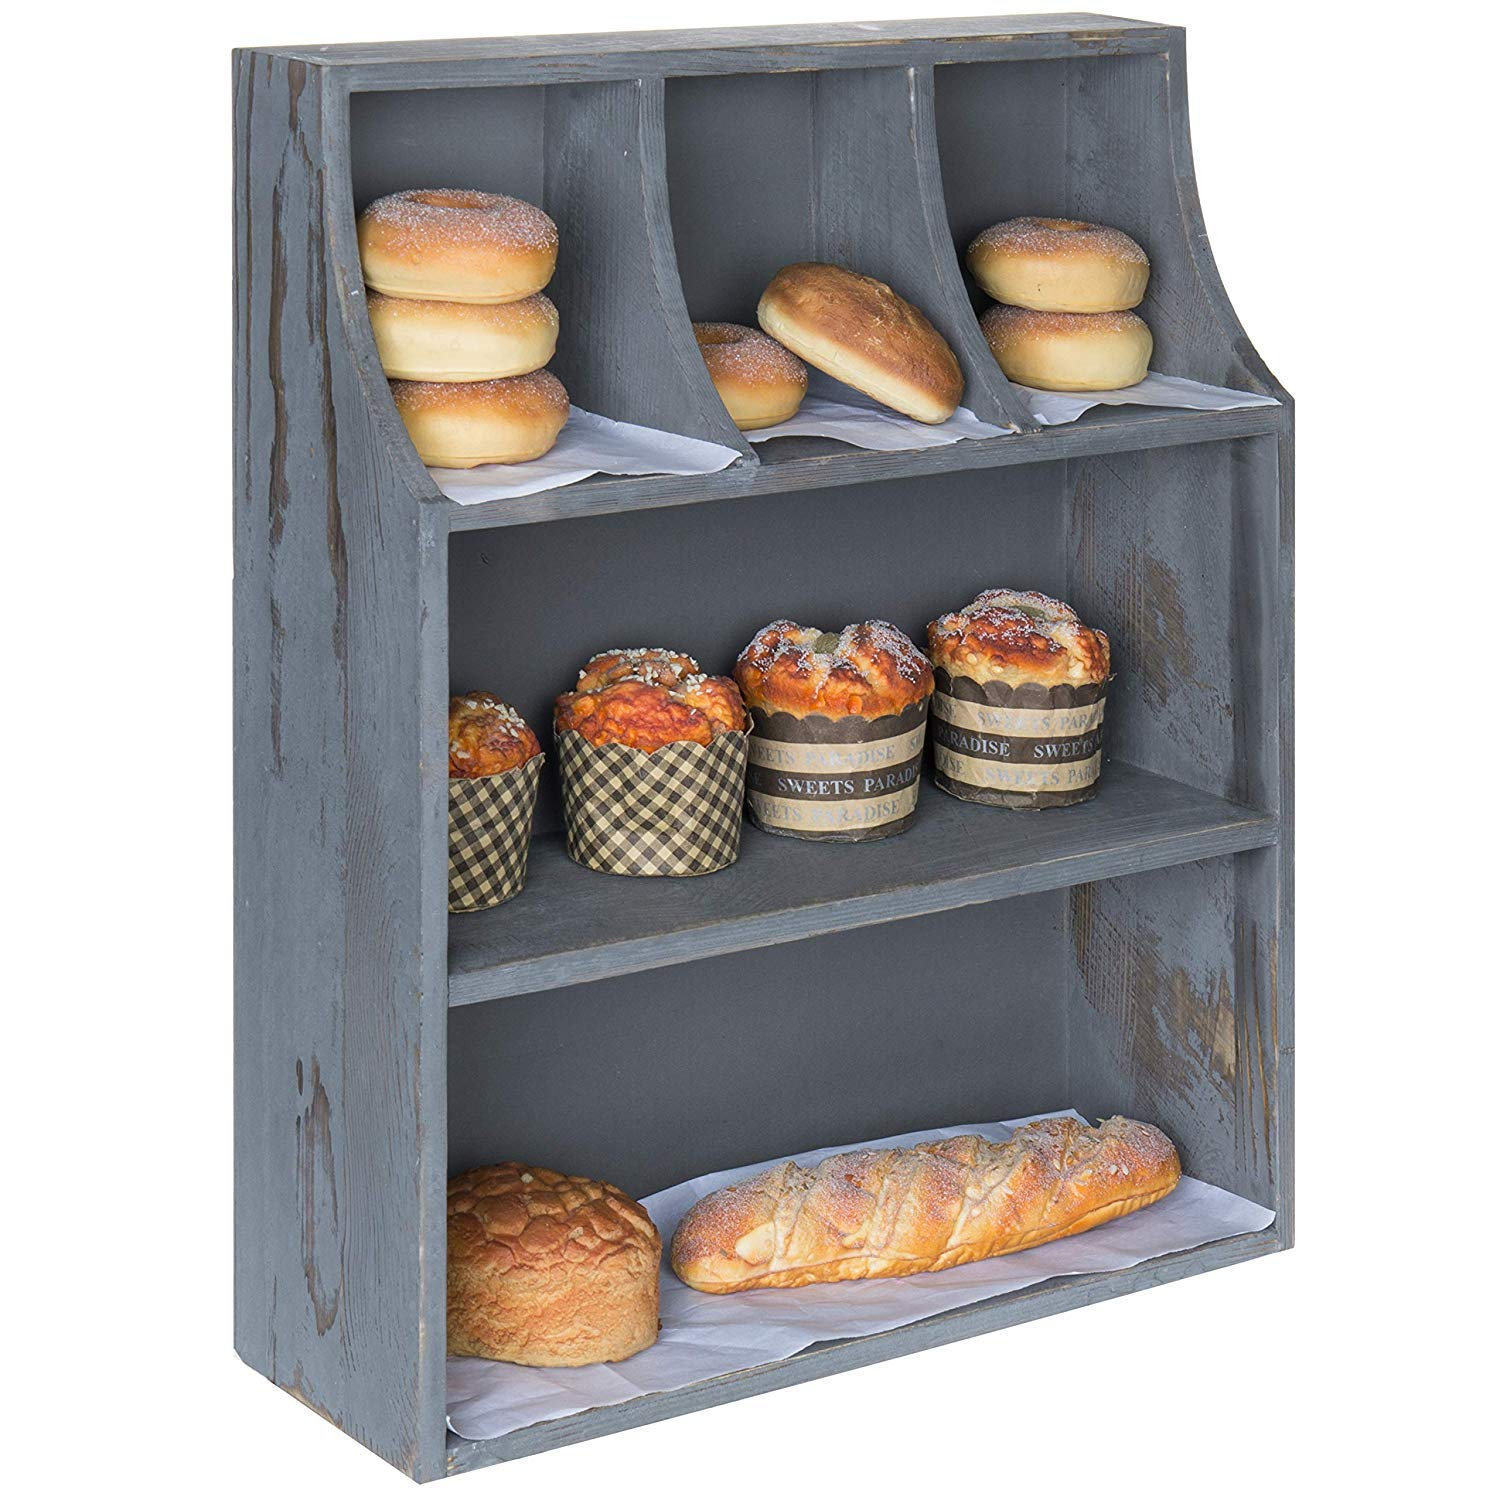 ifidex Eletina 3 Tier Rustic Grey Wood Bakery Countertop Display Stand